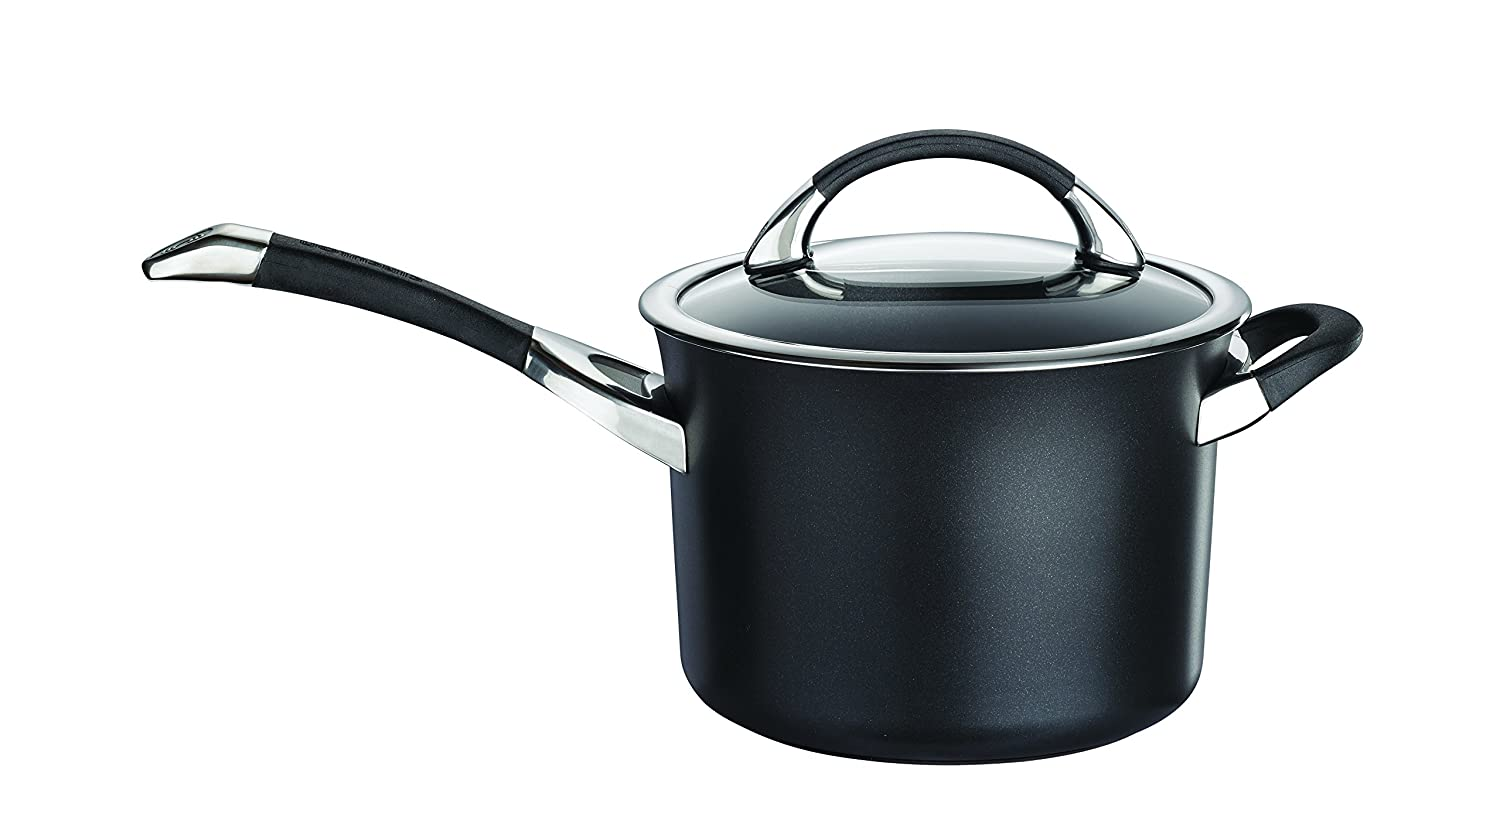 Circulon Symmetry Hard Anodised 20cm Saucepan with Helper handle 3.8L - Black Meyer Group Ltd 80037